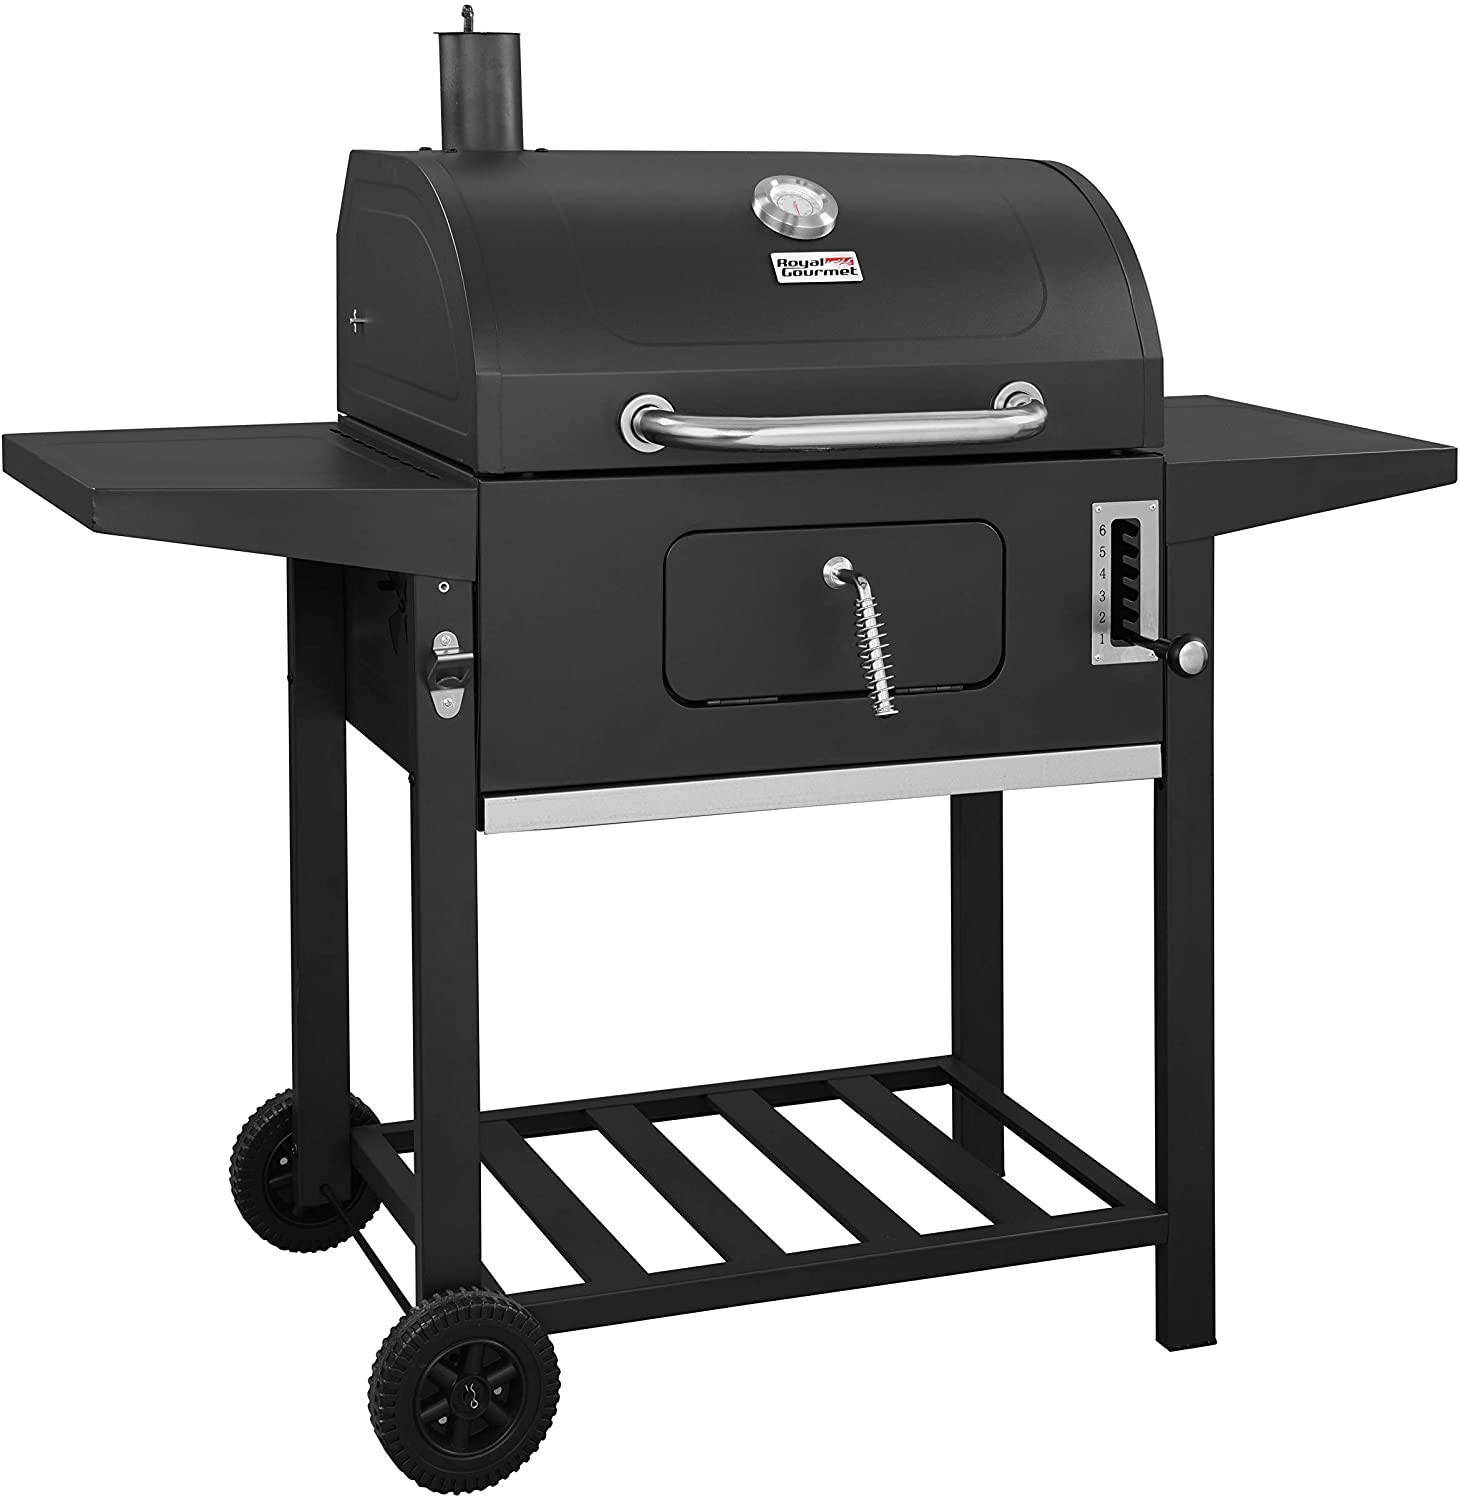 Best BBQ Grill: CD1824A Royal Gourmet Charcoal BBQ Grill